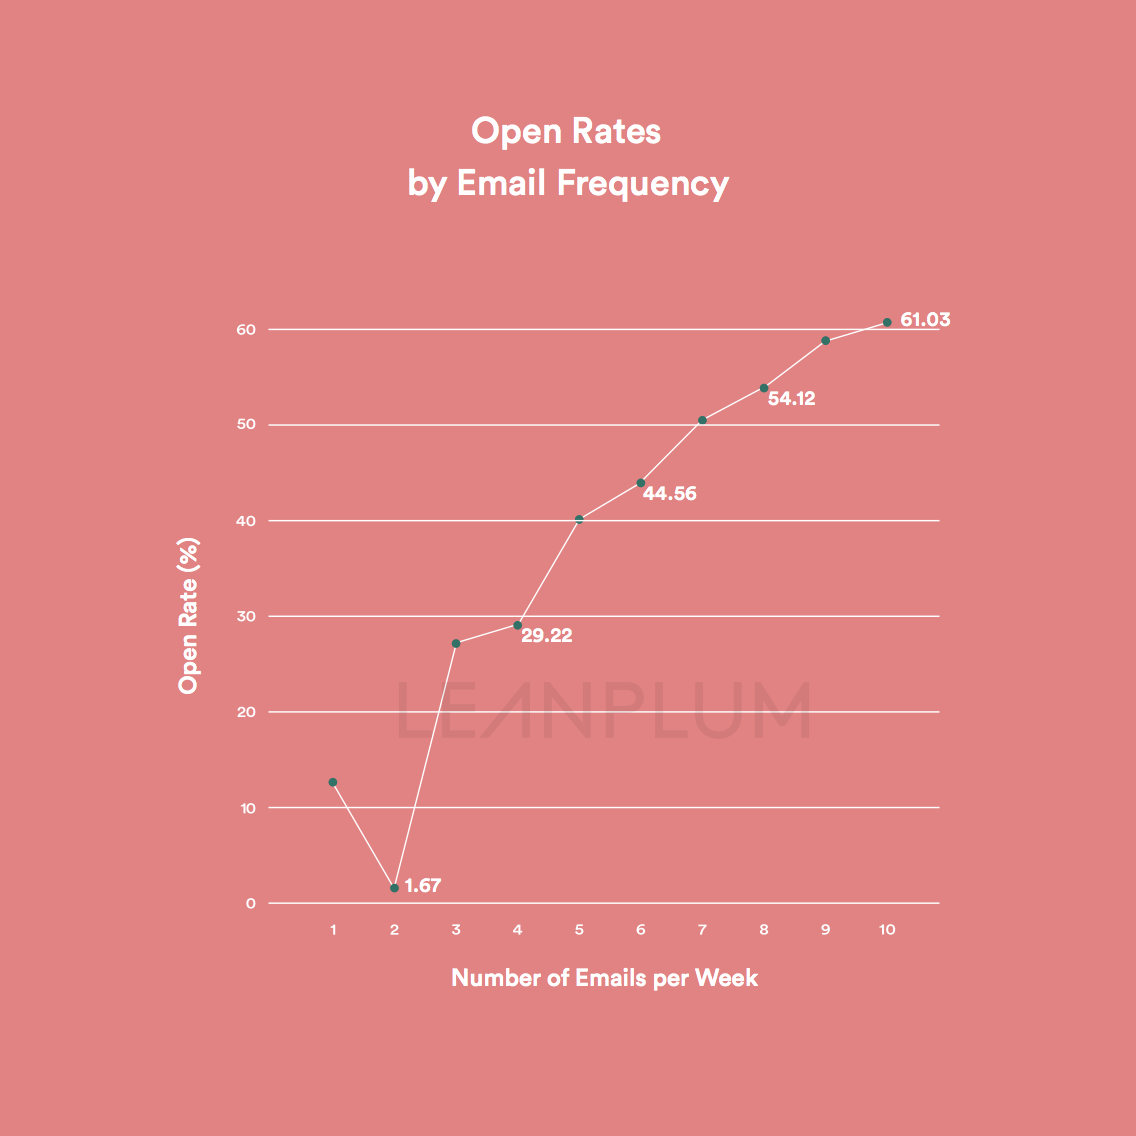 open rates by email frequency